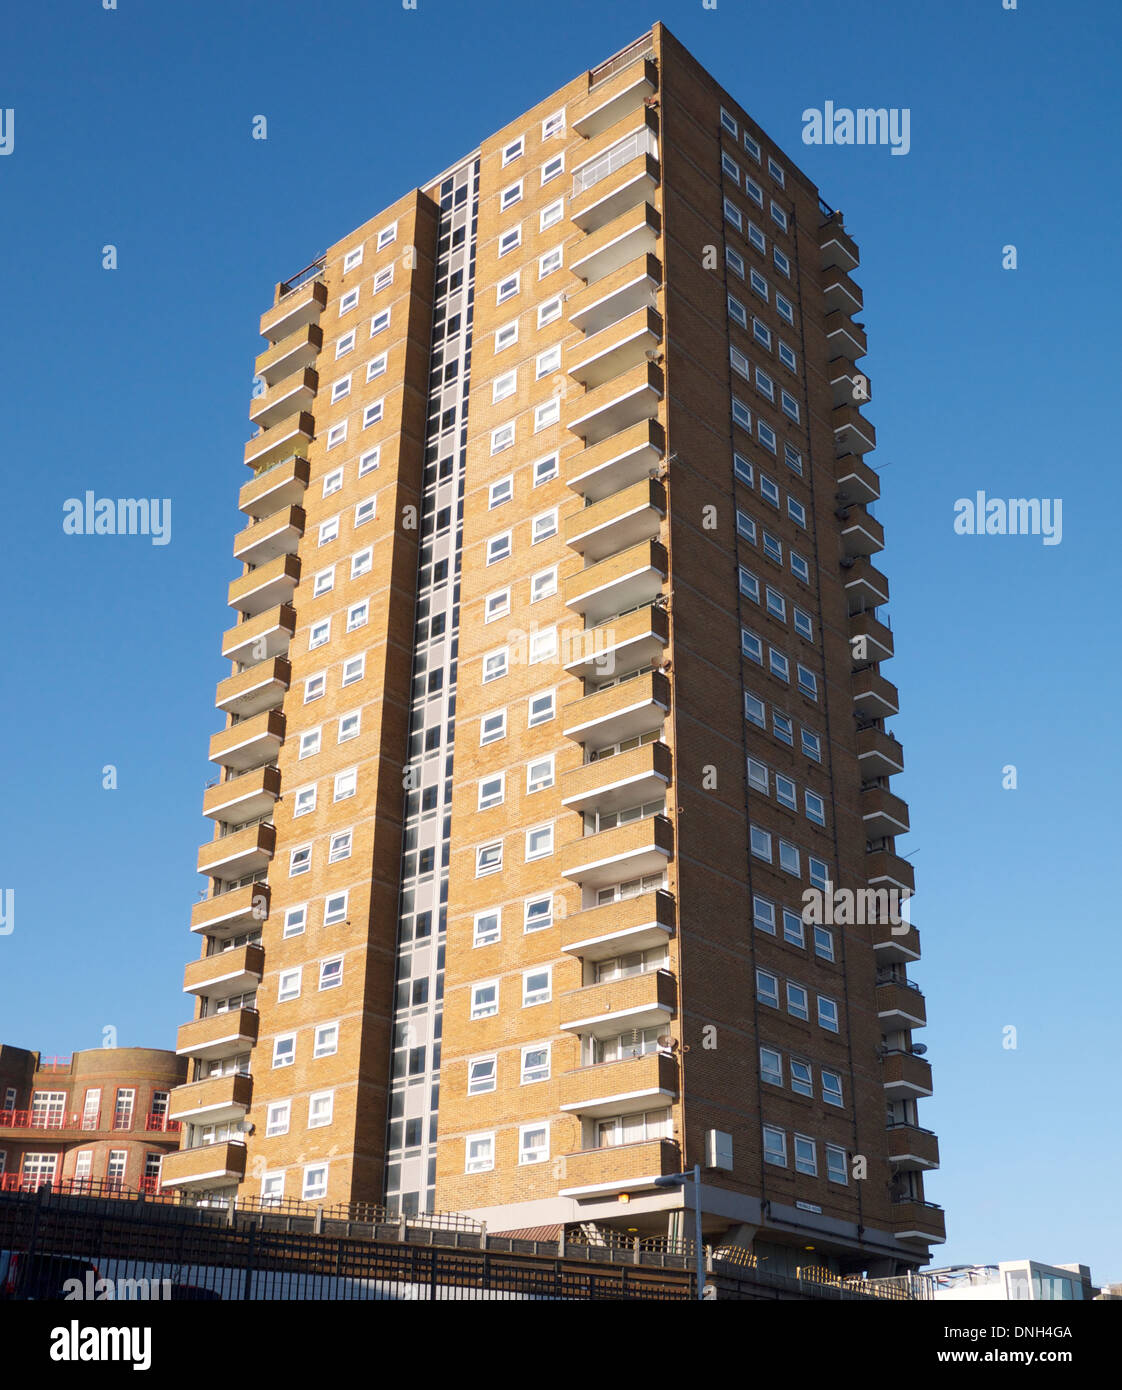 Theobald House 22 storey residential tower block Blackman Street. 63 metres tall - Stock Image